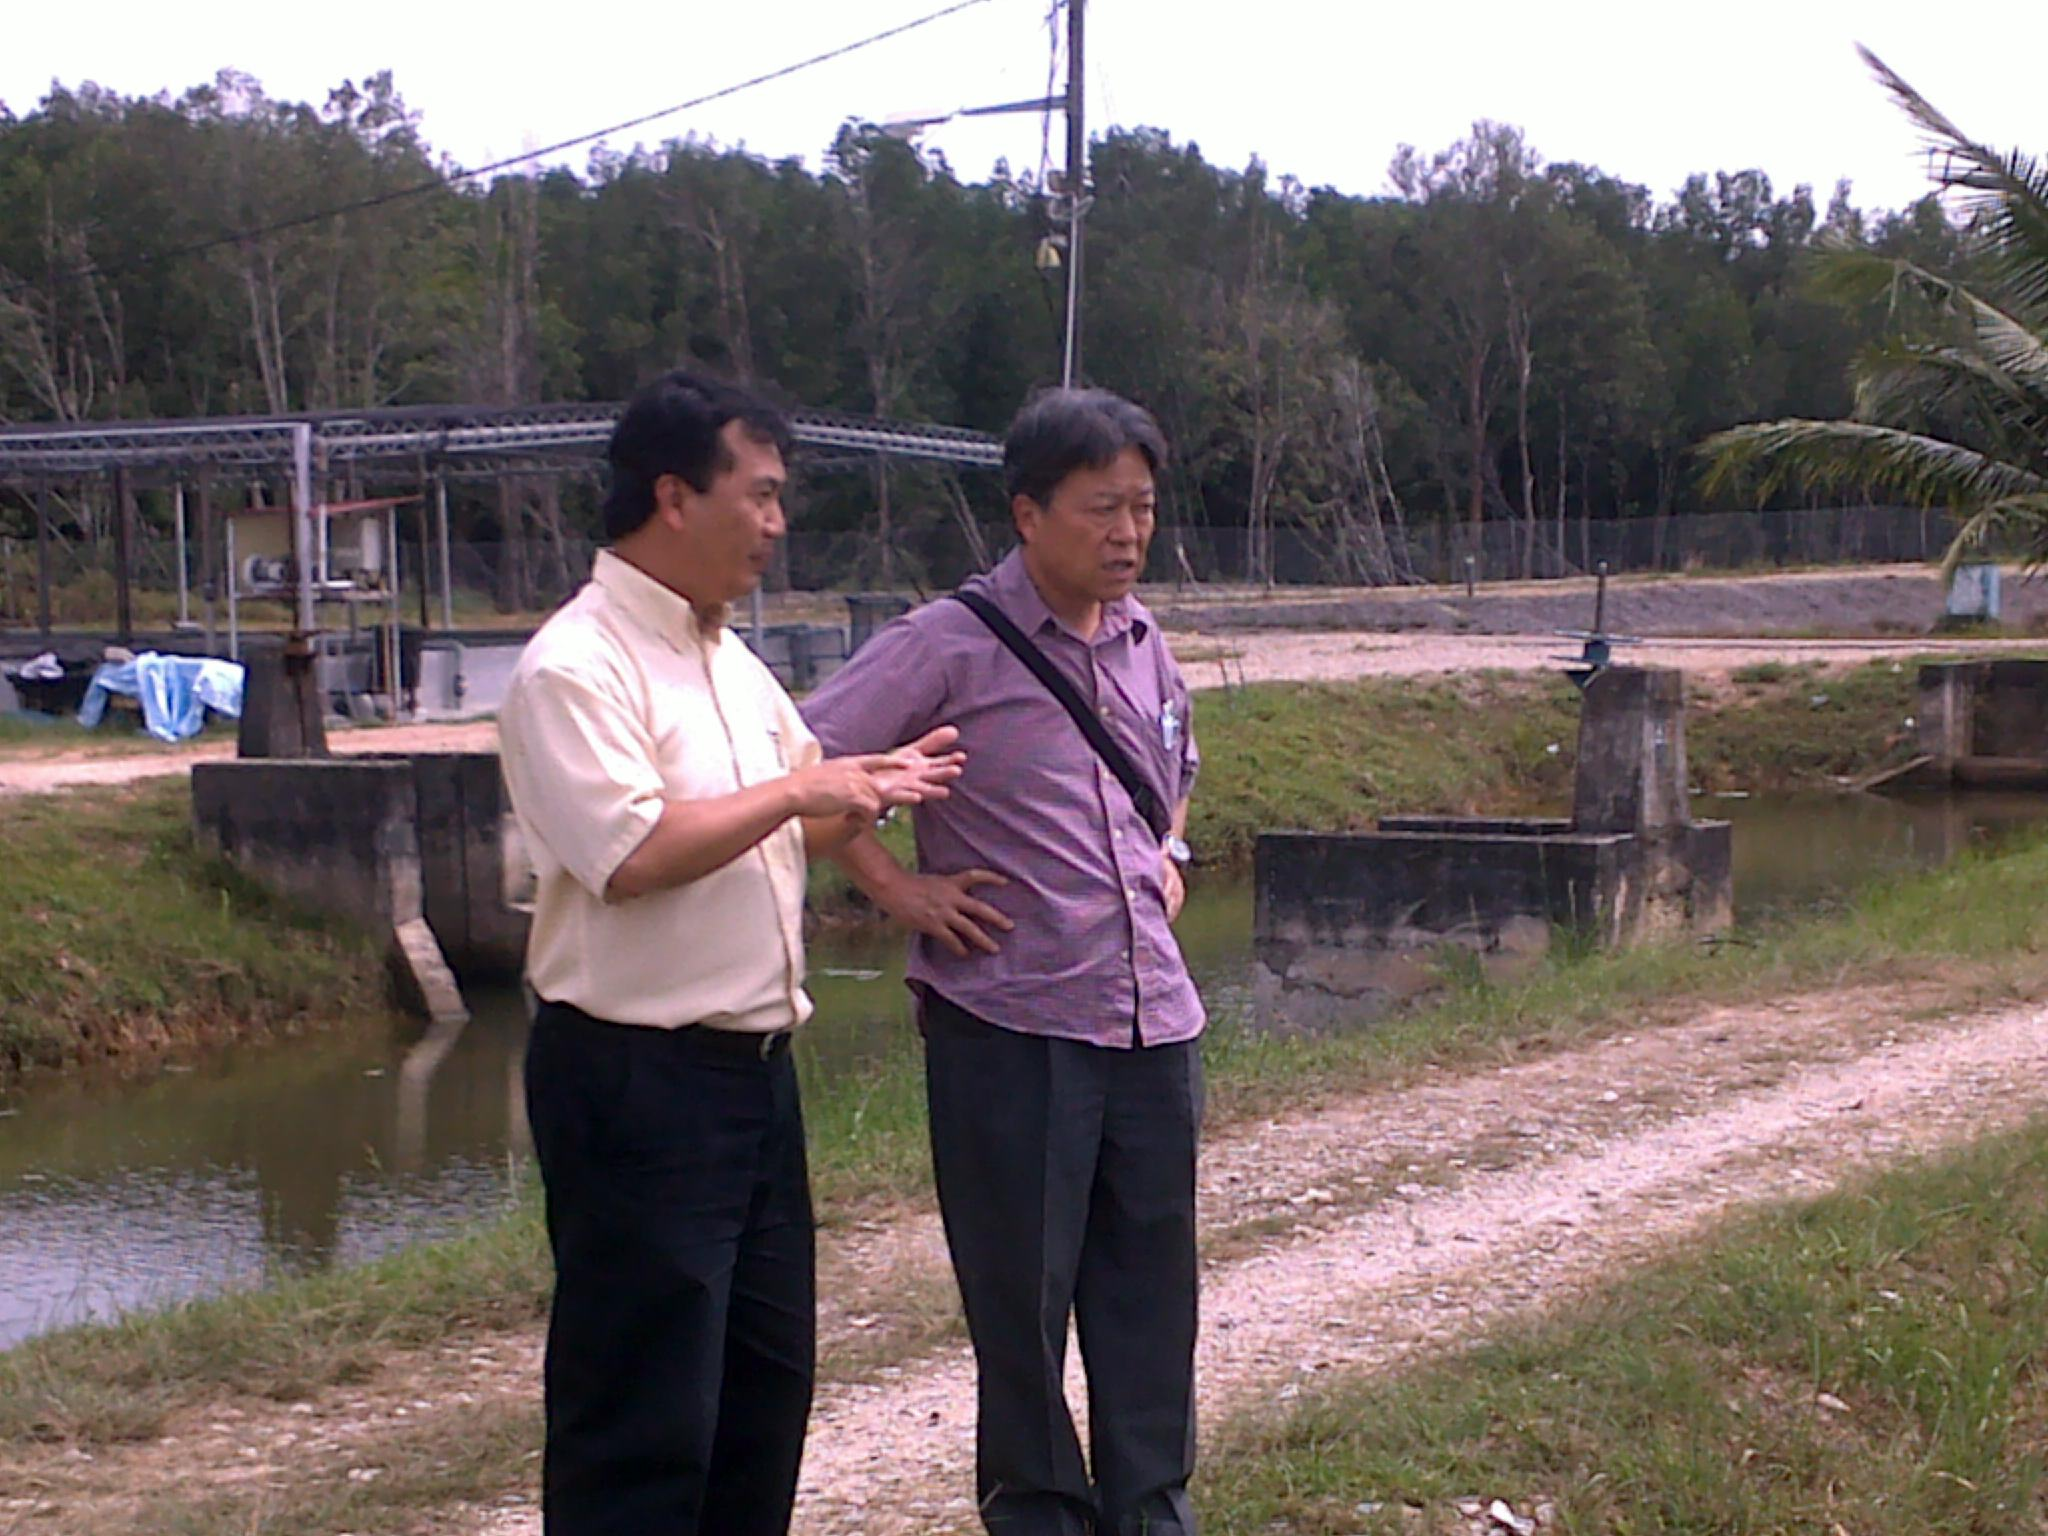 Ken Farm Sdn Bhd and Fisheries Research Institute (Seaweed Project